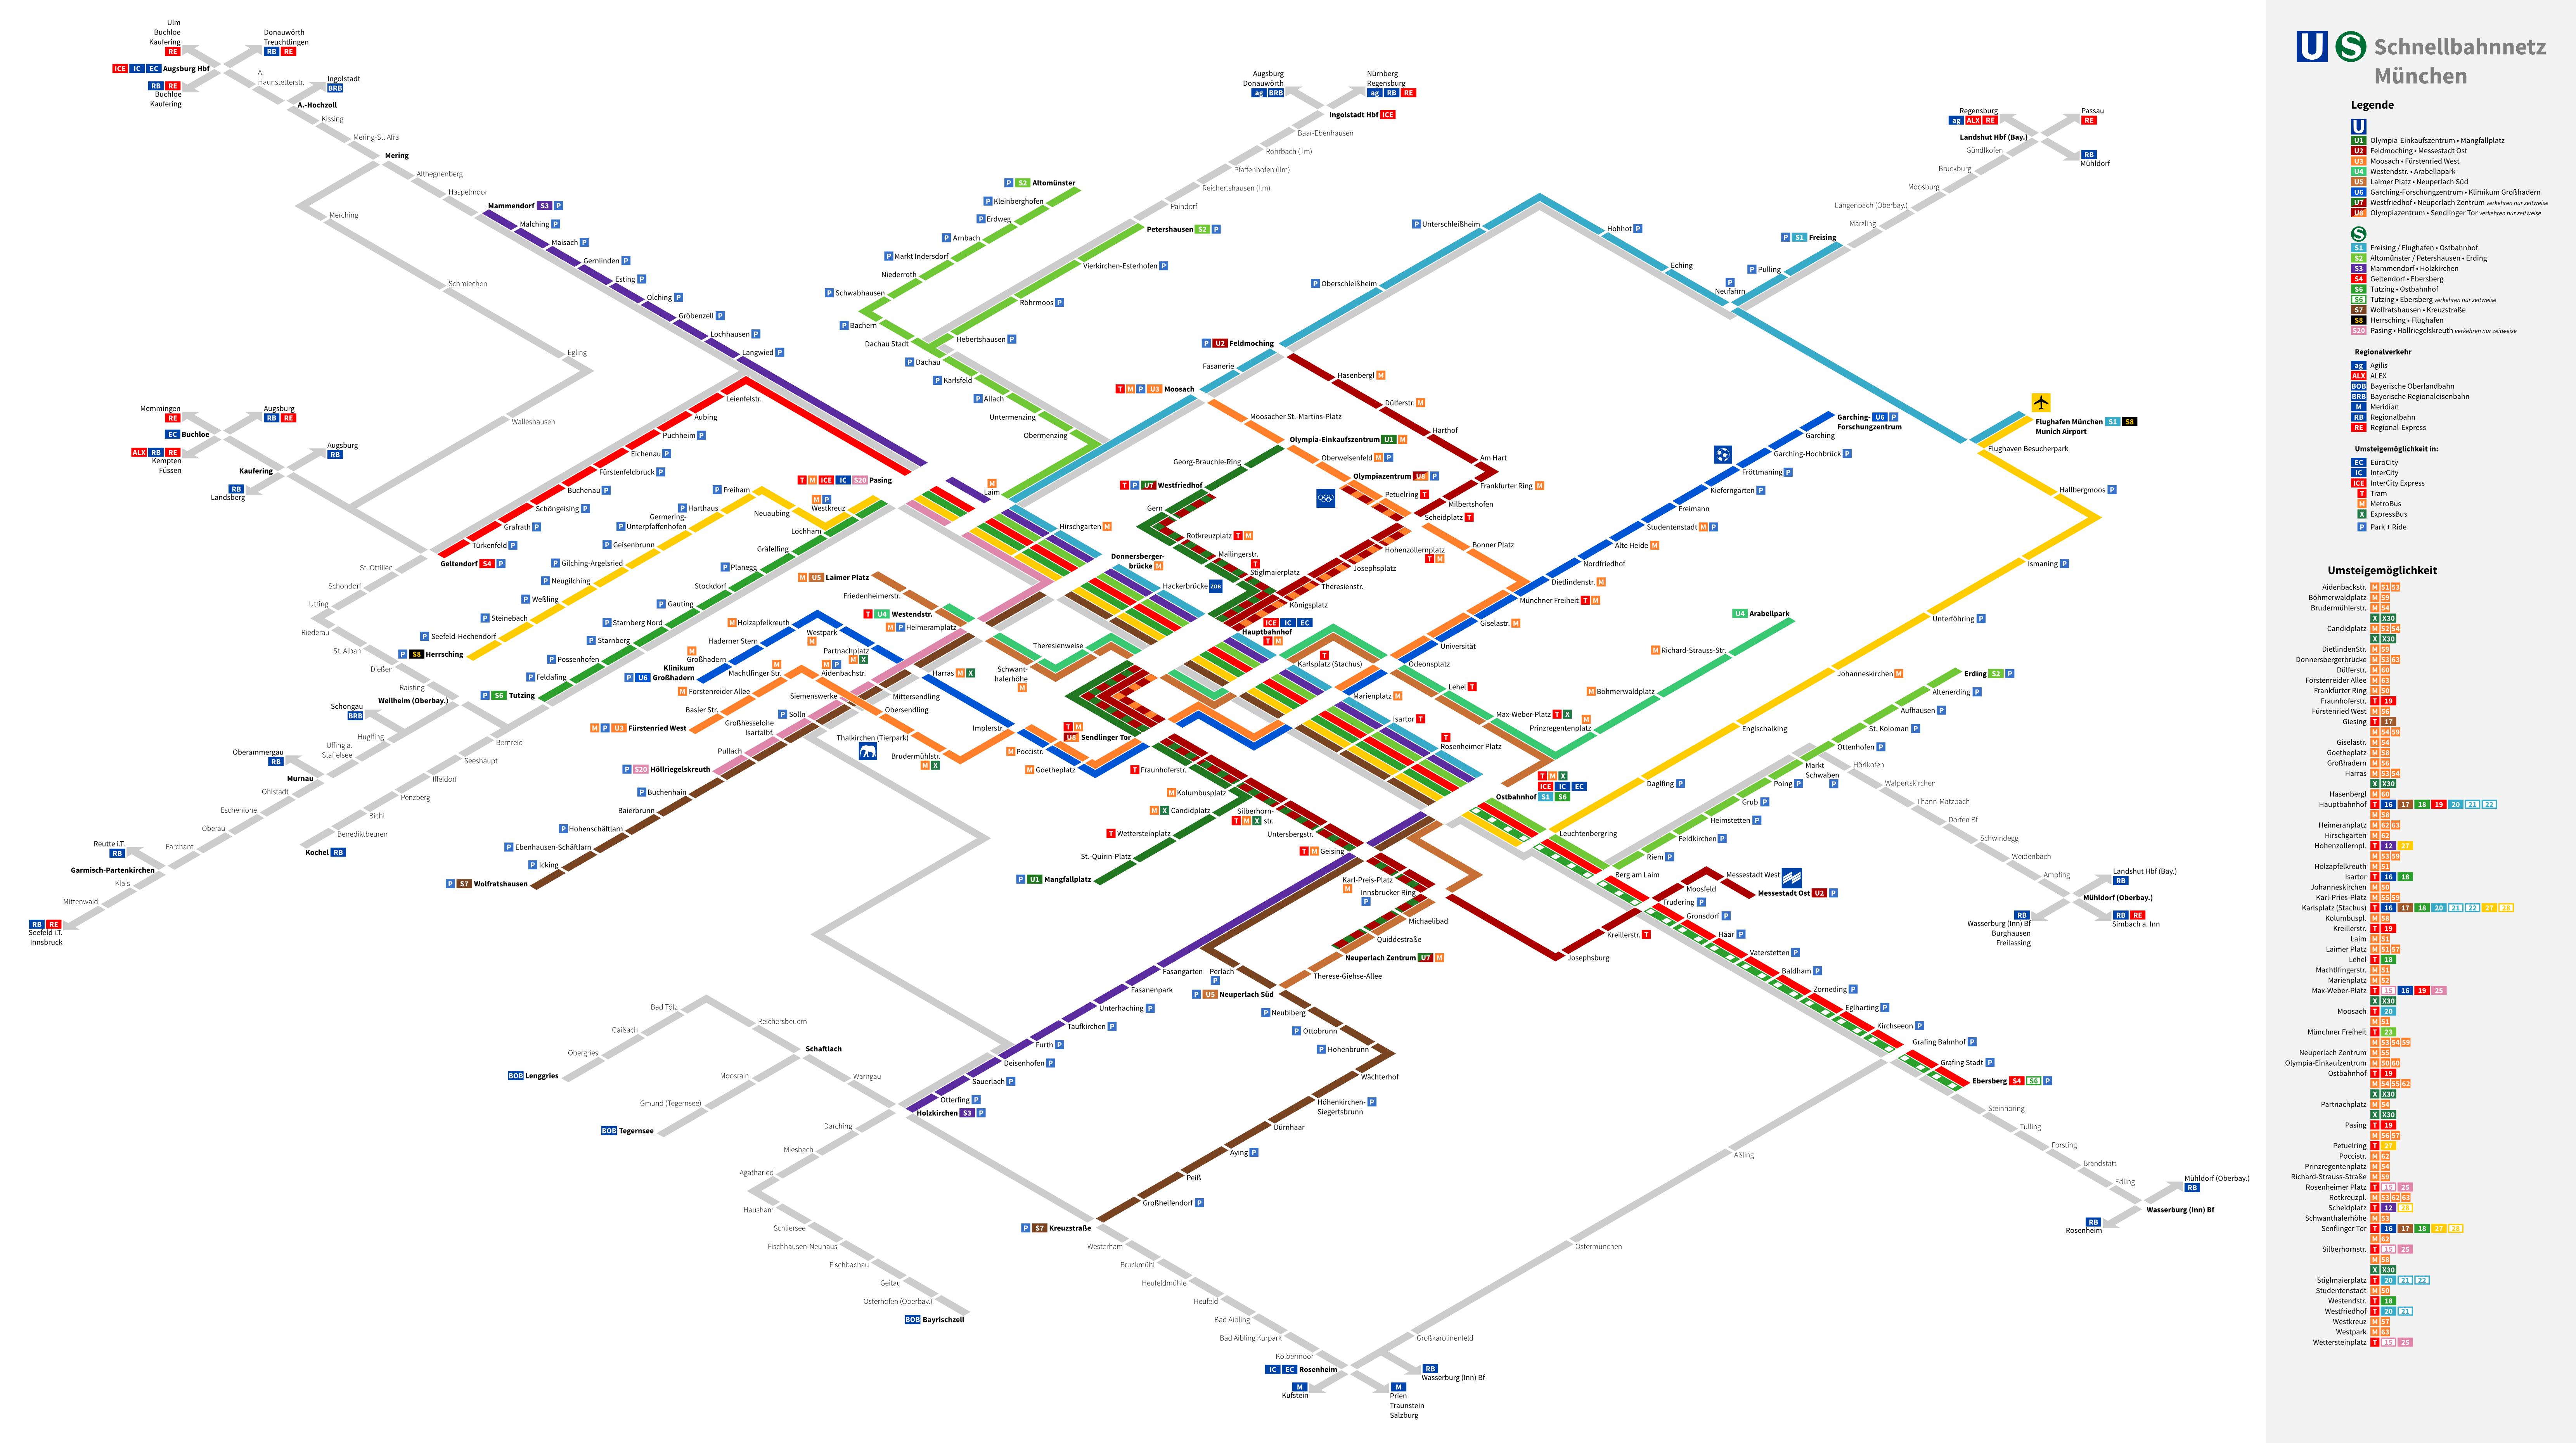 Munich Subway Map.Munich U Bahn S Bahn Isometric Map Theodore Ditsek